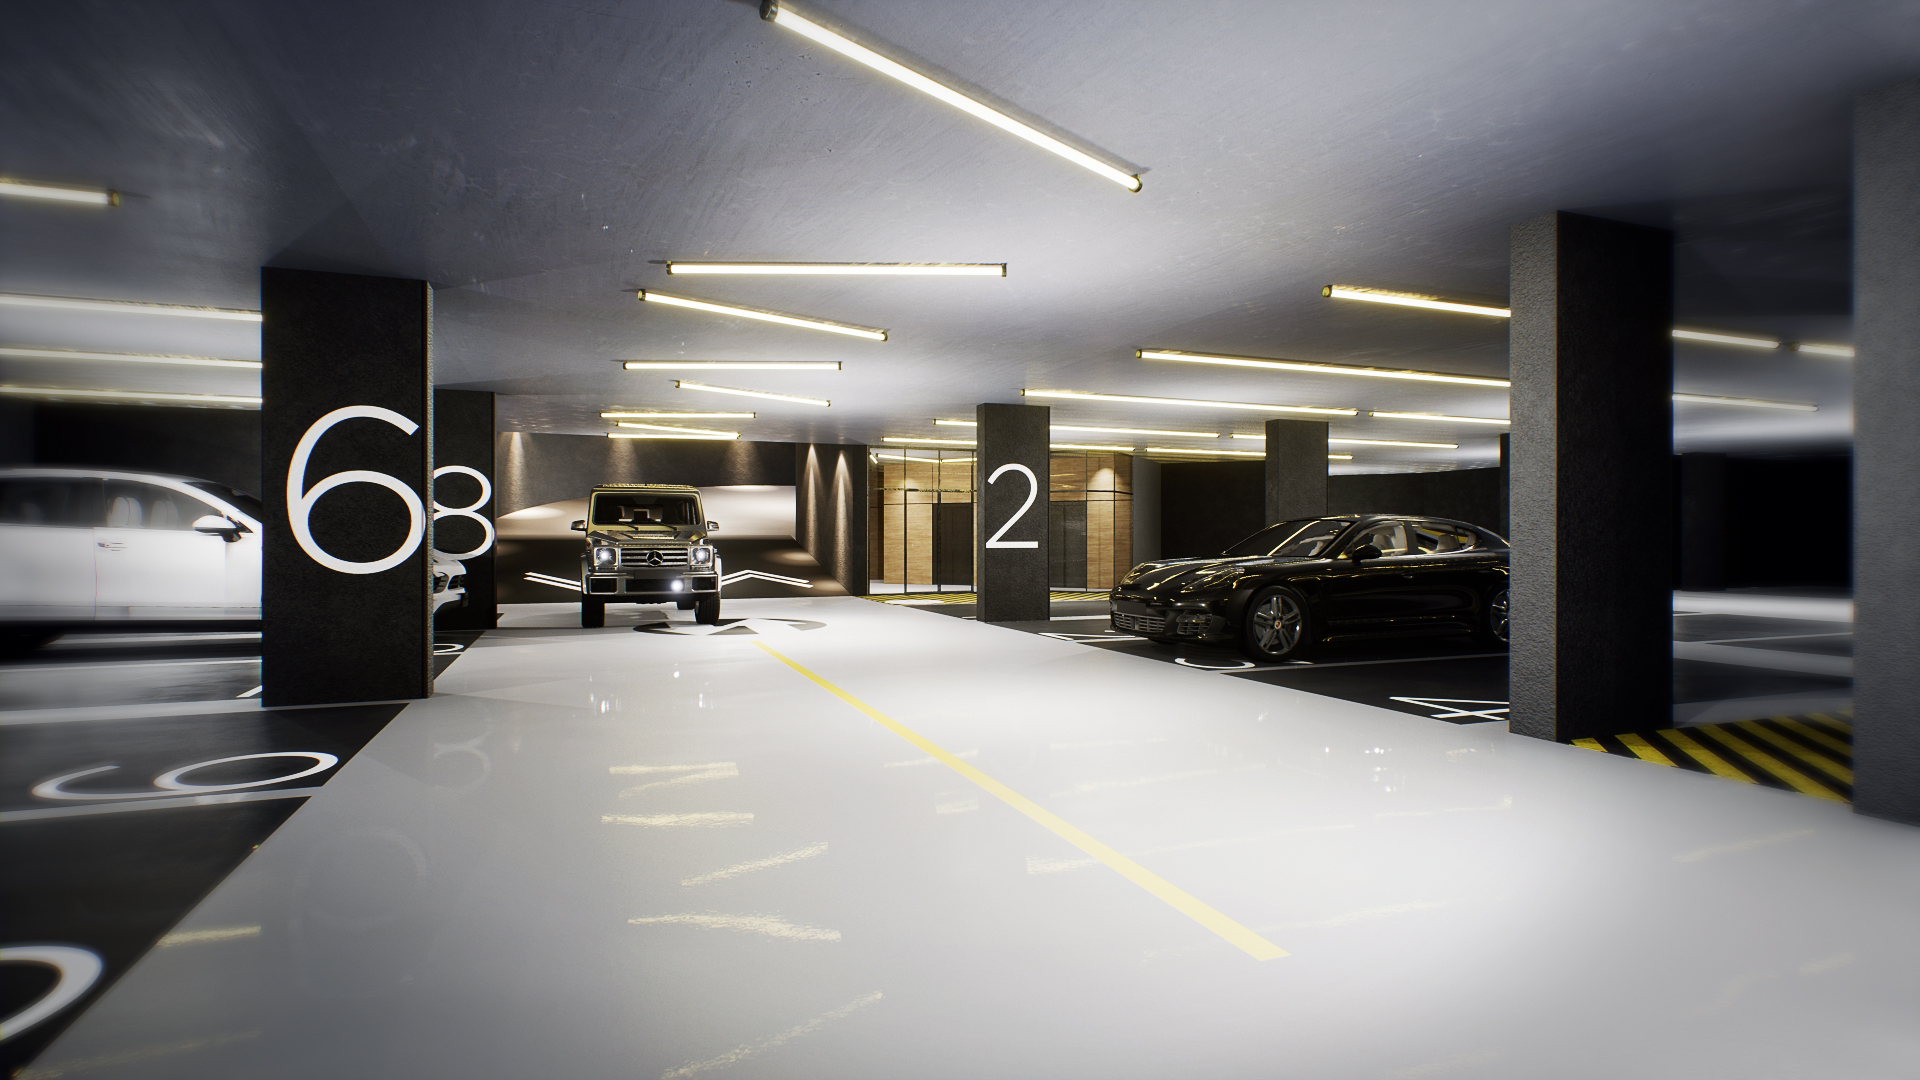 CARAMEL_1181QS_Parking Garage_03_01